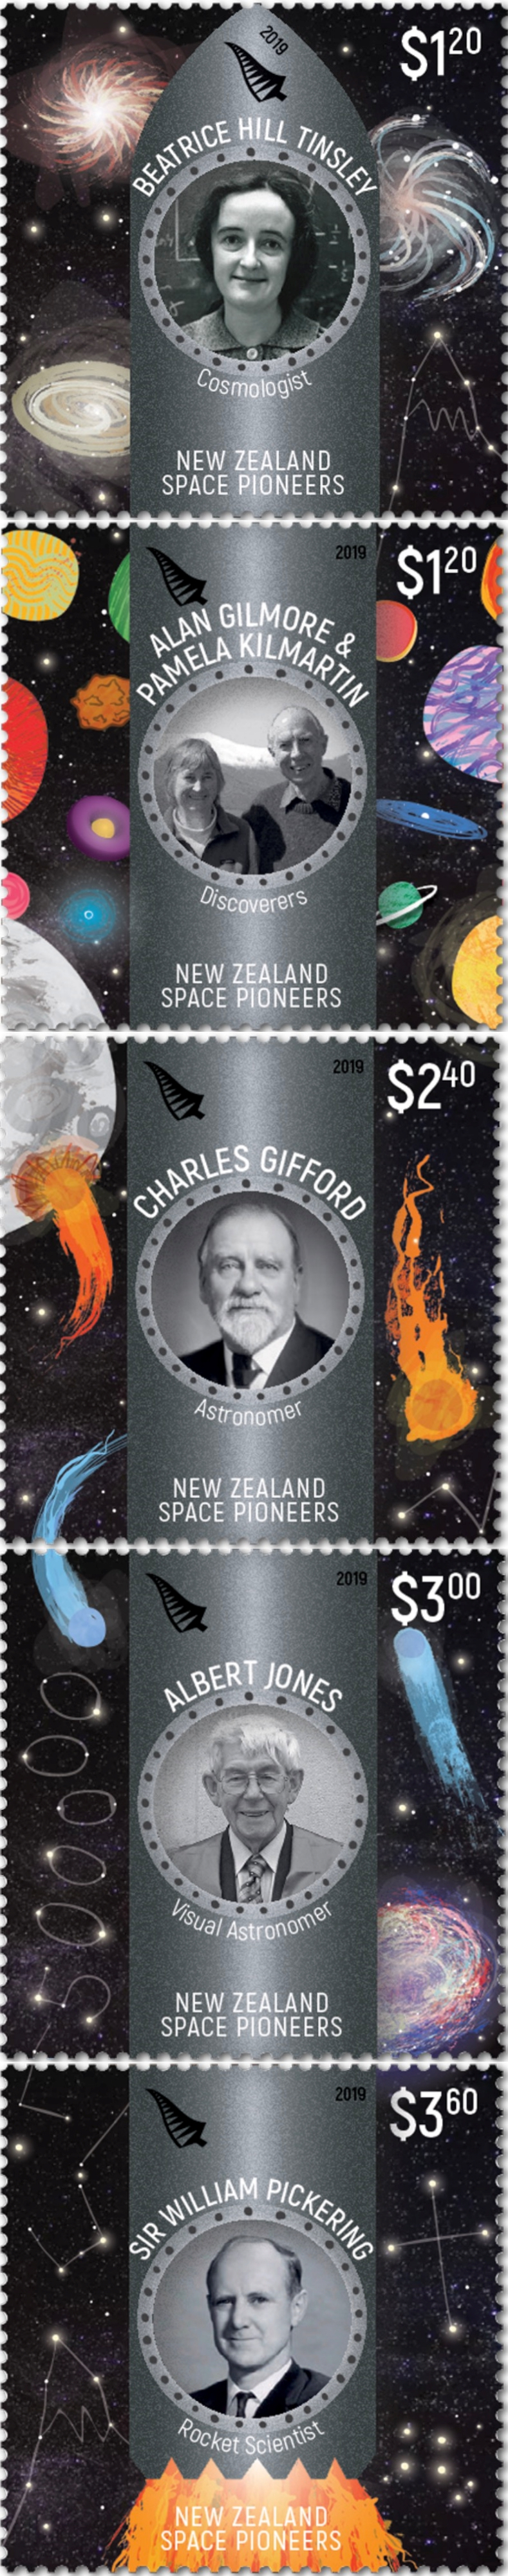 New Zealand - Space Pioneers (May 1, 2019) se-tenant strip of 5